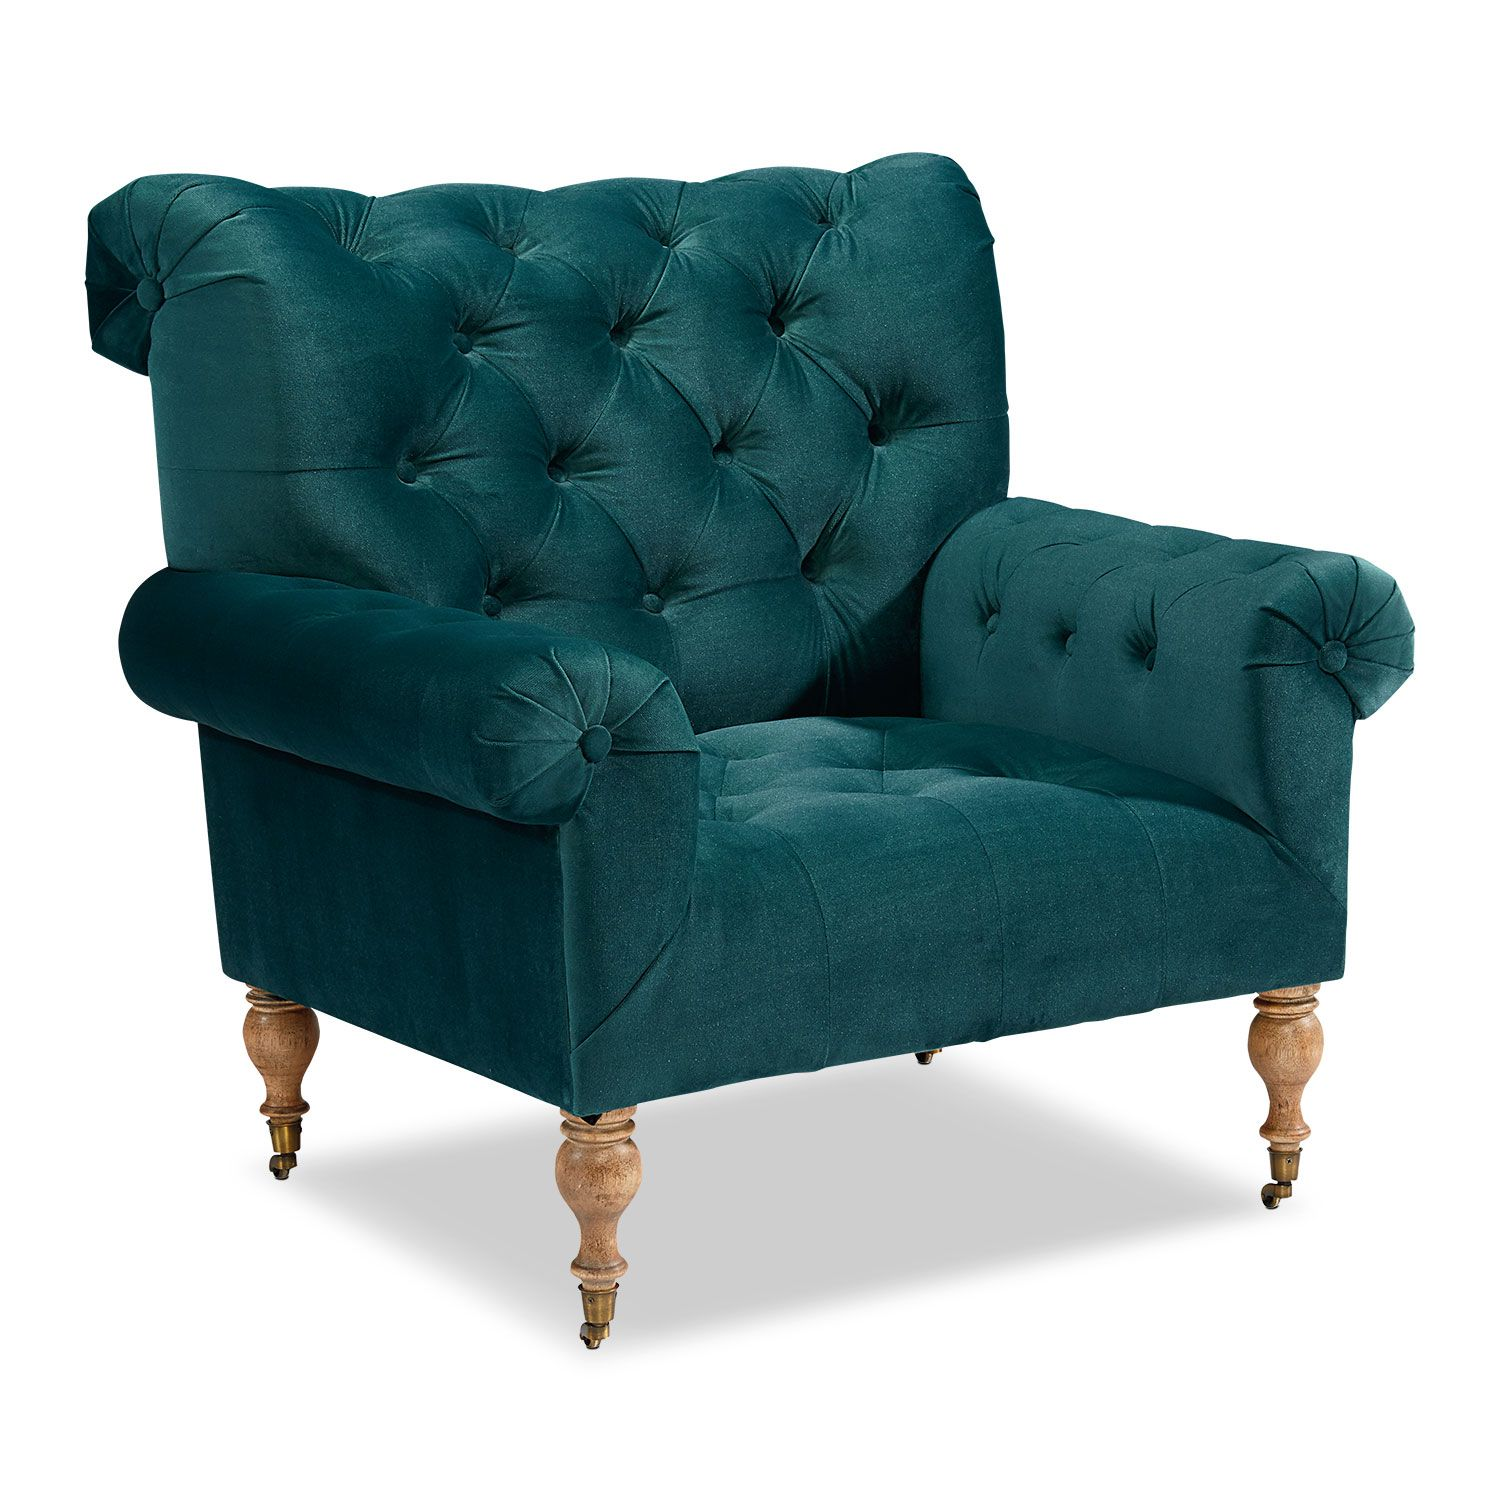 fortable and colorful the upholstered Carpe Diem Accent Chair